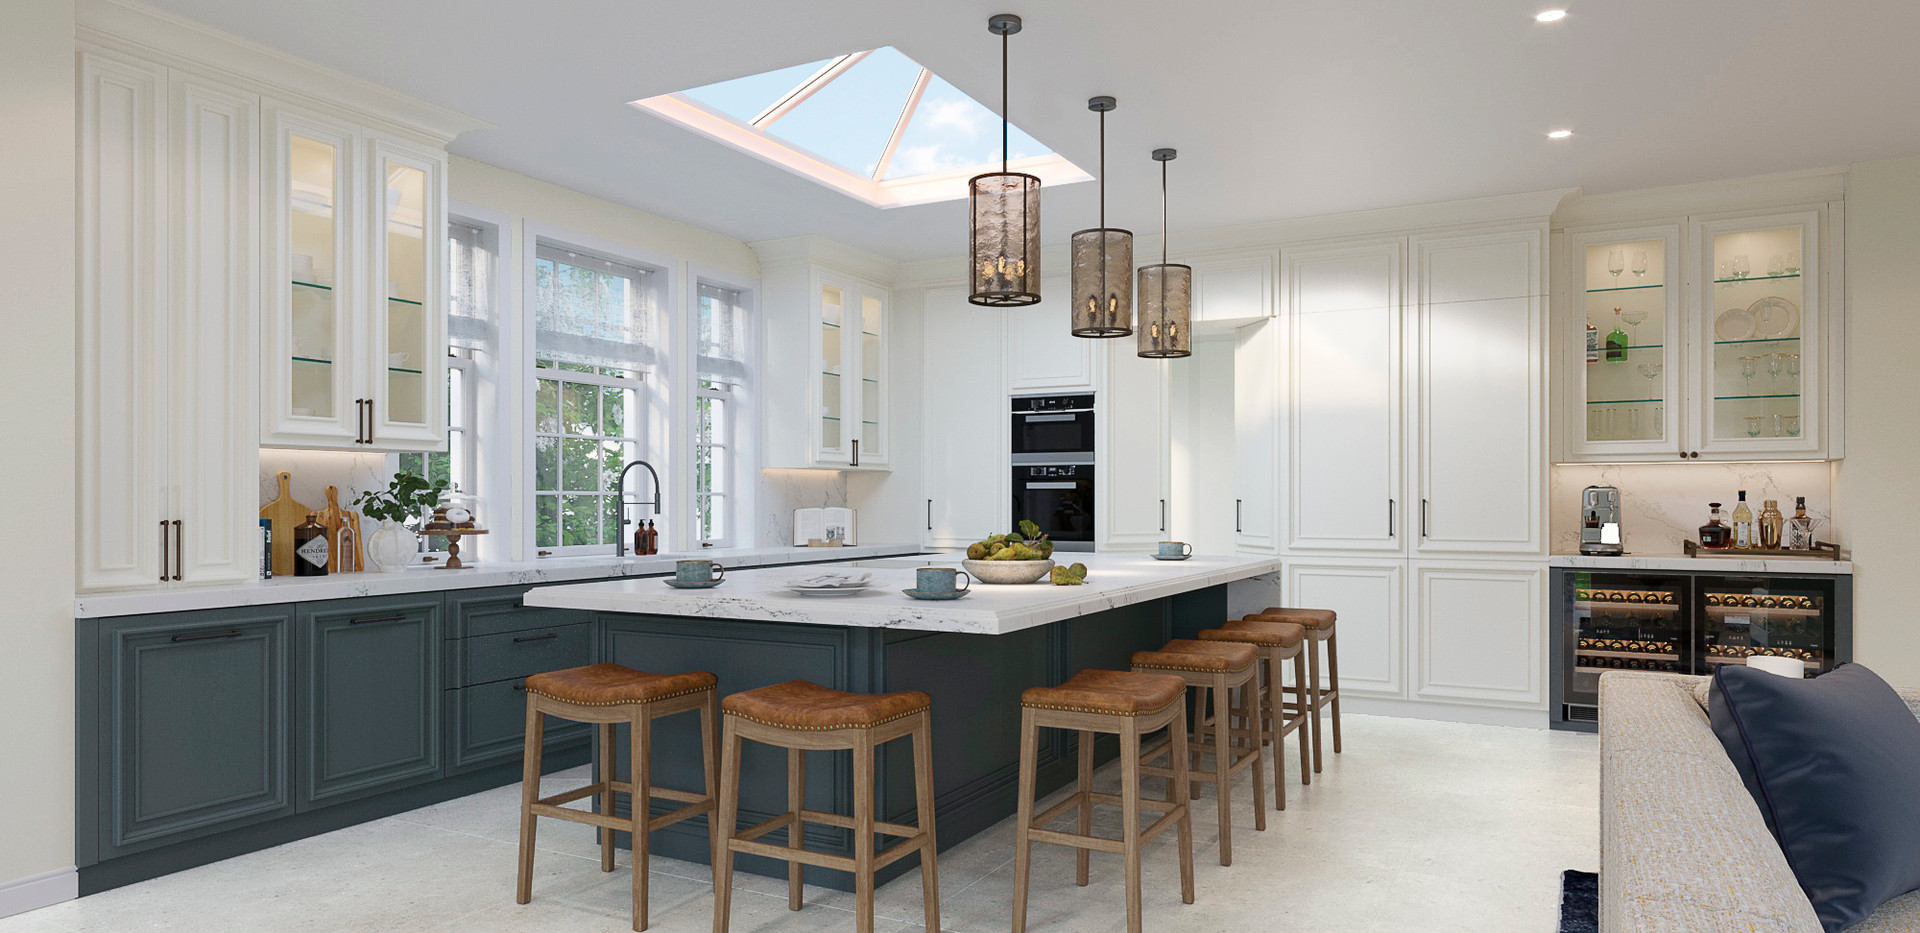 Kitchen | Sunningdale Development